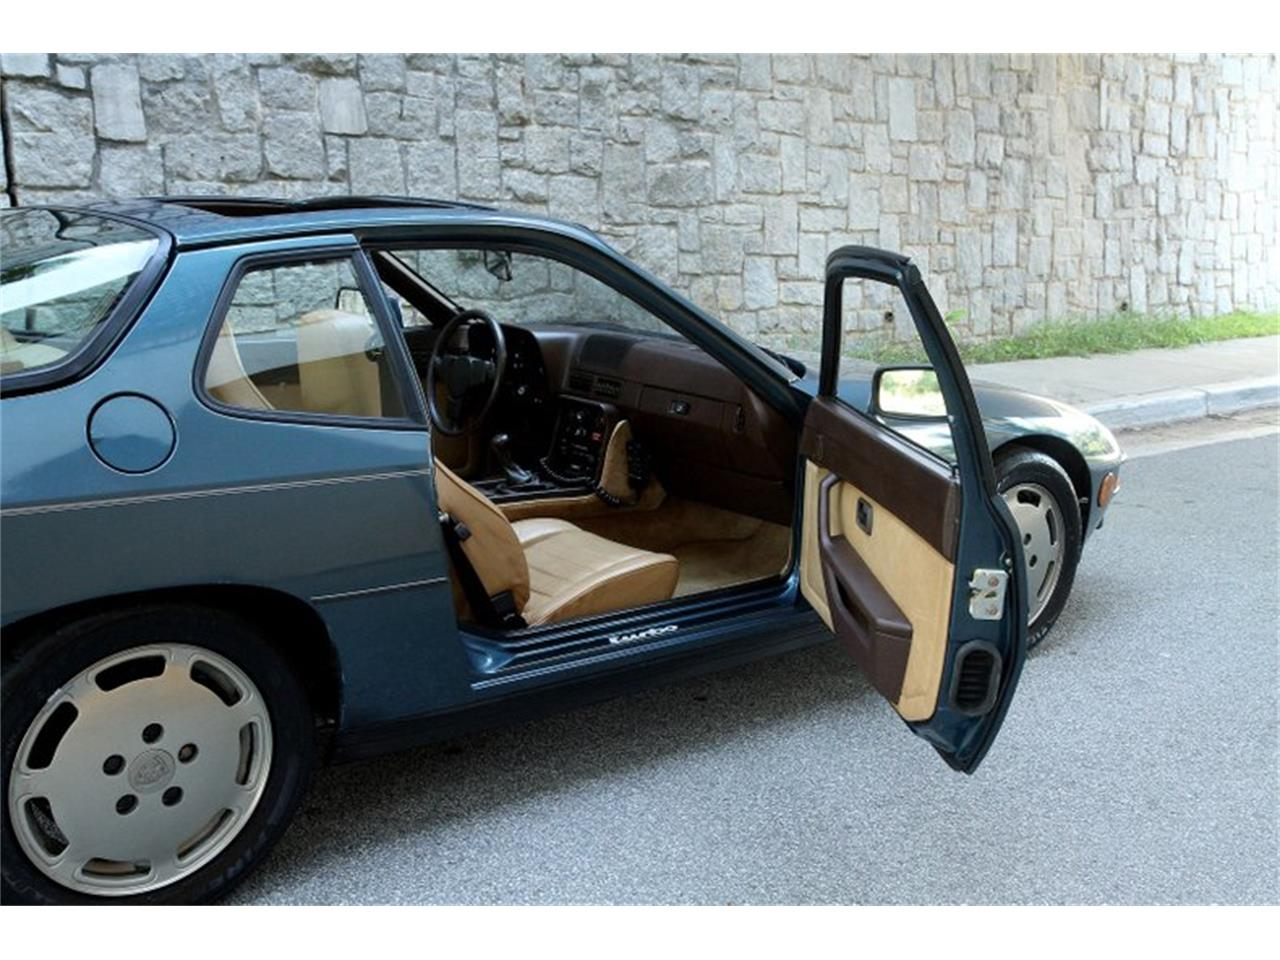 Large Picture of '80 Porsche 924 located in Atlanta Georgia Offered by Motorcar Studio - Q3PE